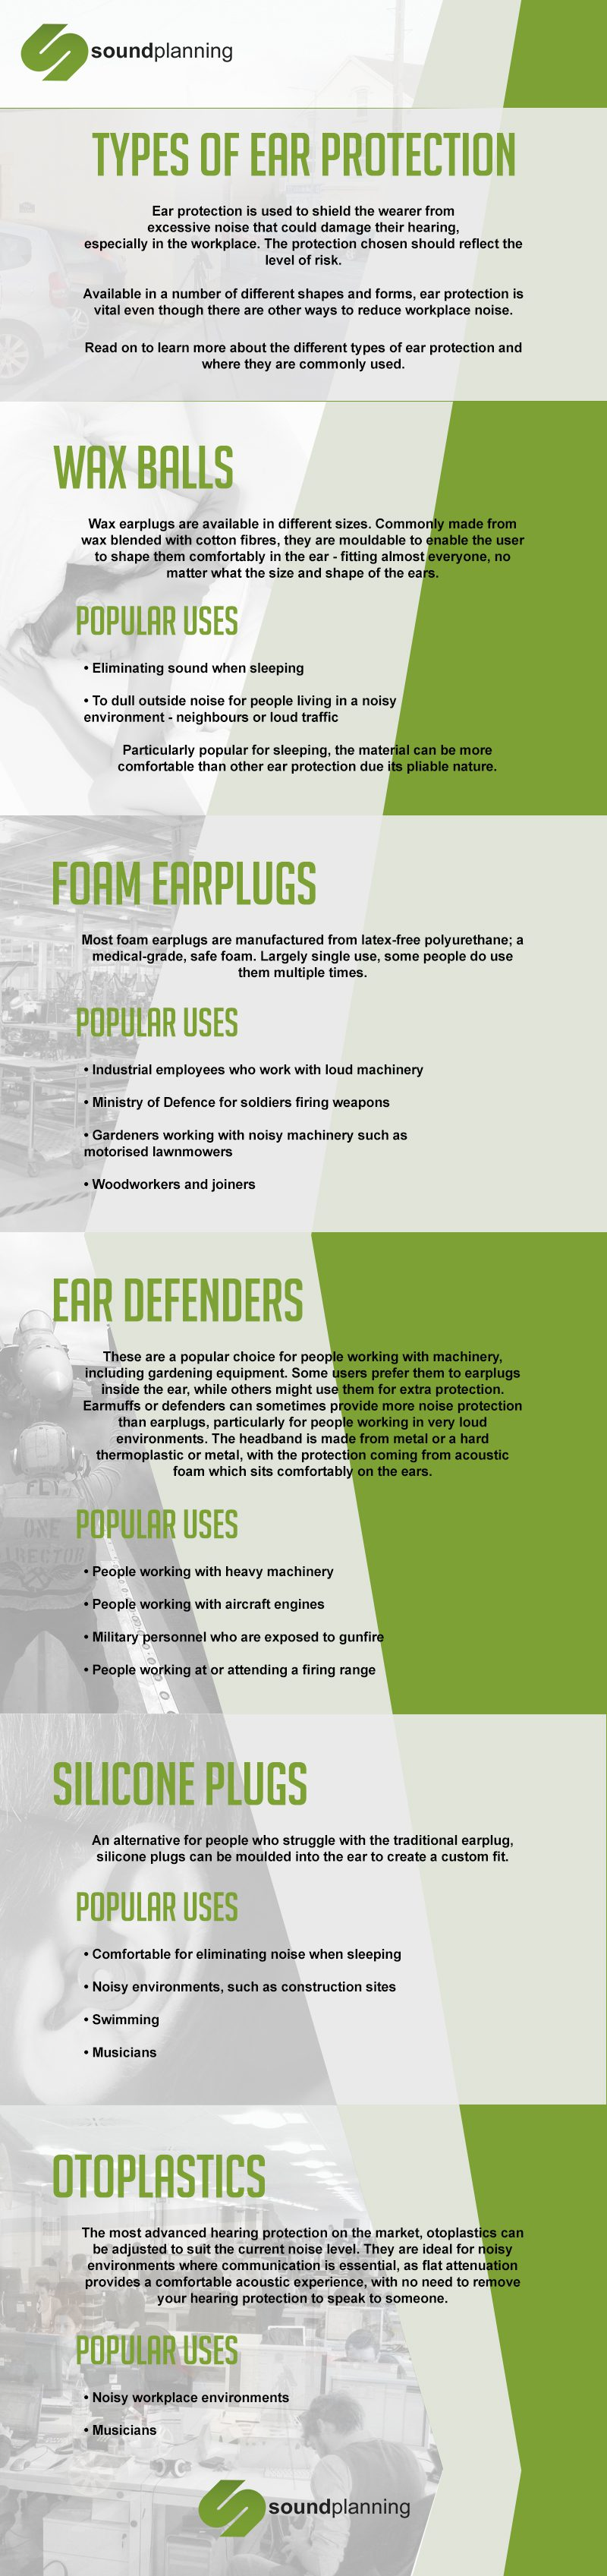 sound planning ear protection infographic